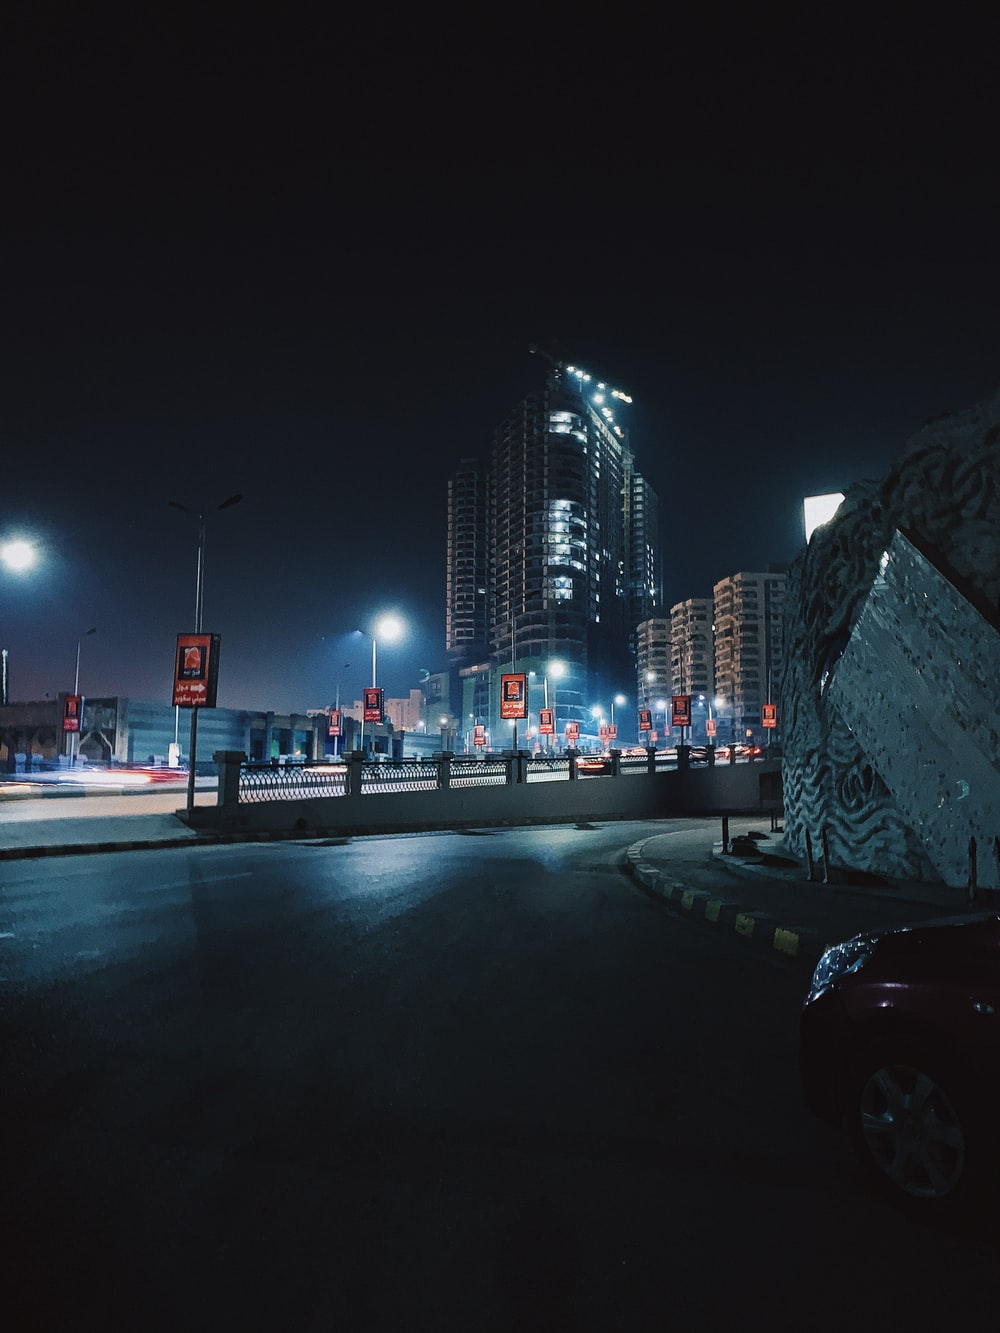 cars on road near city buildings during night time